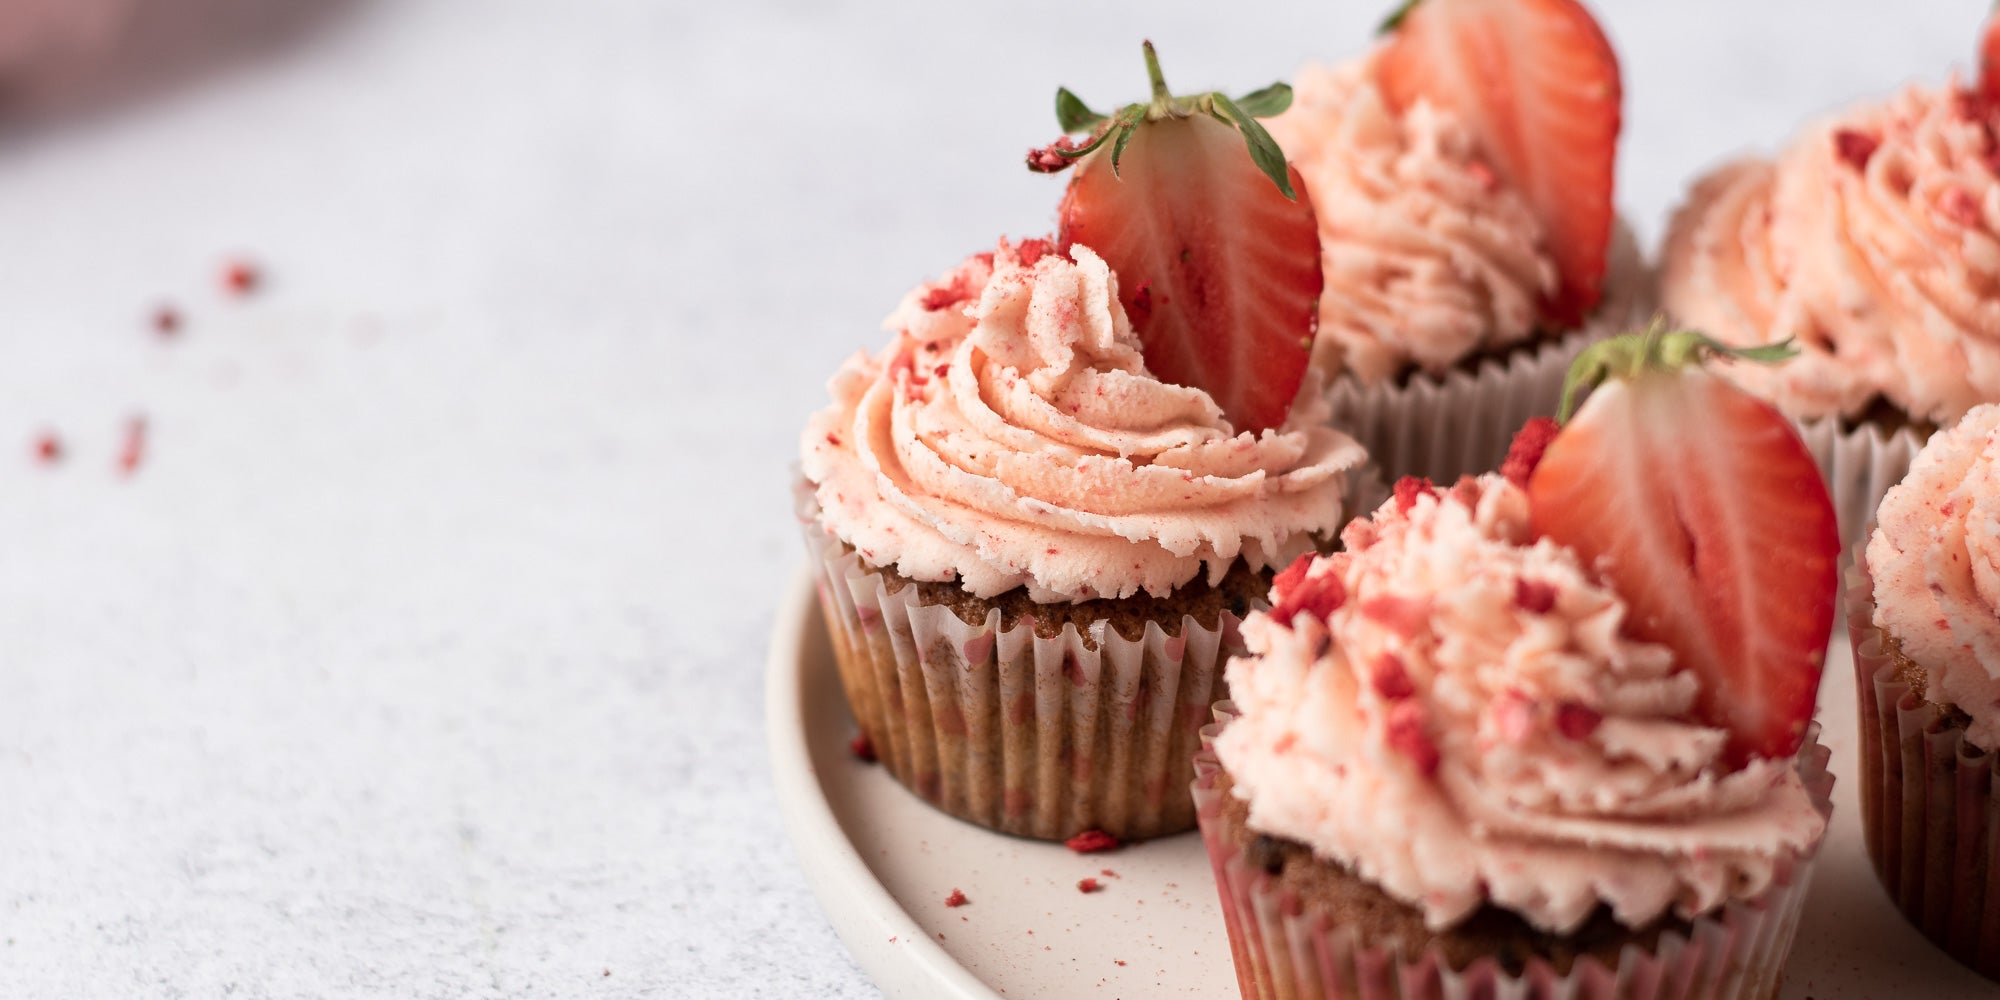 Strawberry cupcakes topped with strawberry buttercream and strawberries